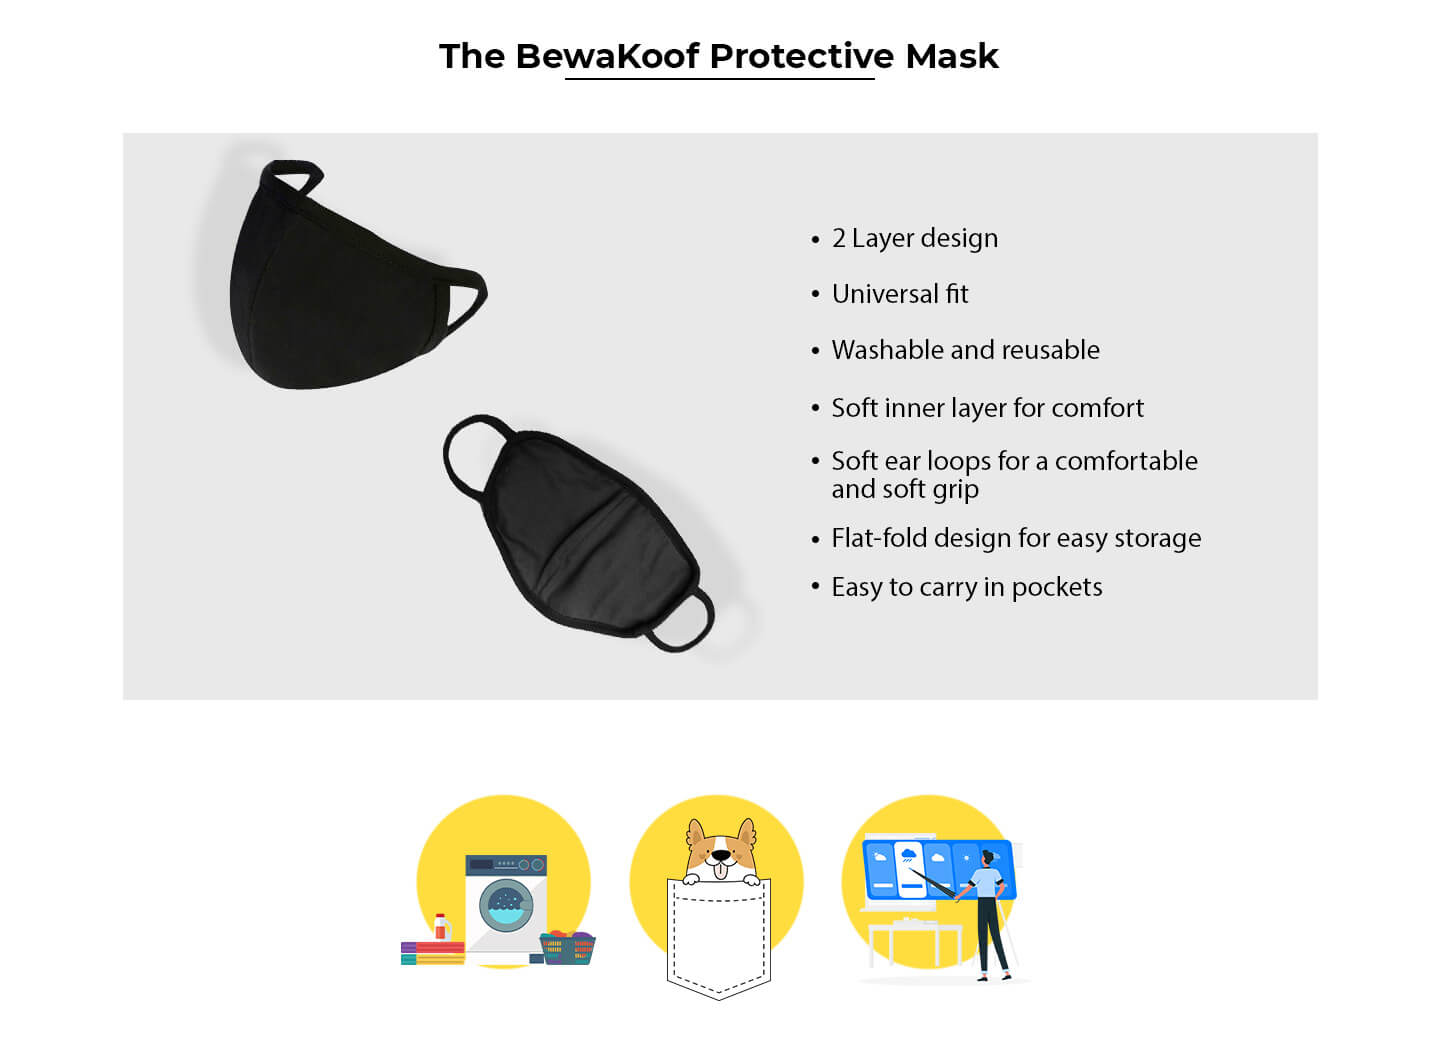 2-Layer Premium Protective Masks - Pack of 3 (Jet black- Jet black-Jet black) Description Image Website 0@Bewakoof.com